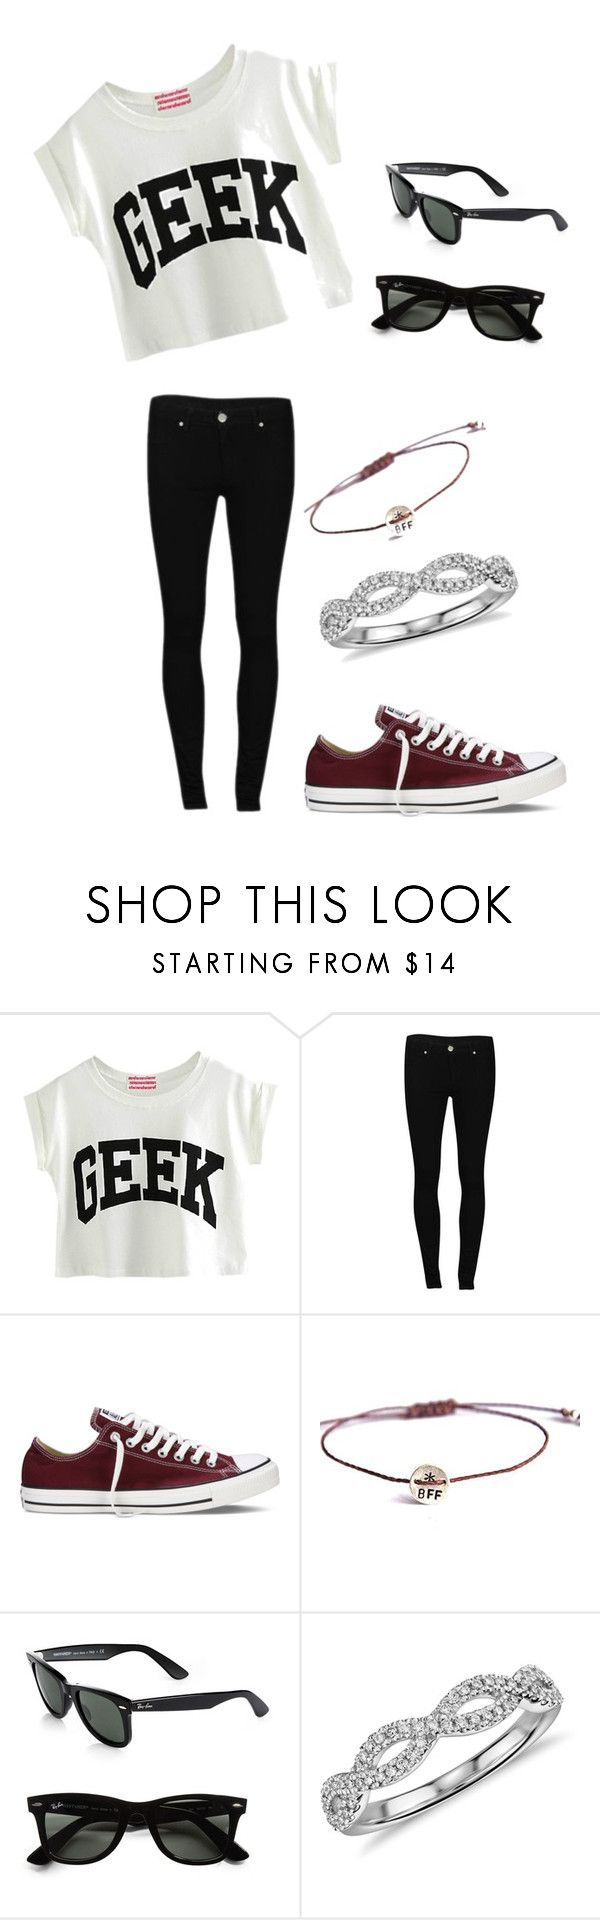 """@skaylergreen27"" by fashionuber ❤ liked on Polyvore featuring 2nd One, Converse, Vivien Frank Designs, Ray-Ban, Blue Nile, women's clothing, women's fashion, women, female and woman"